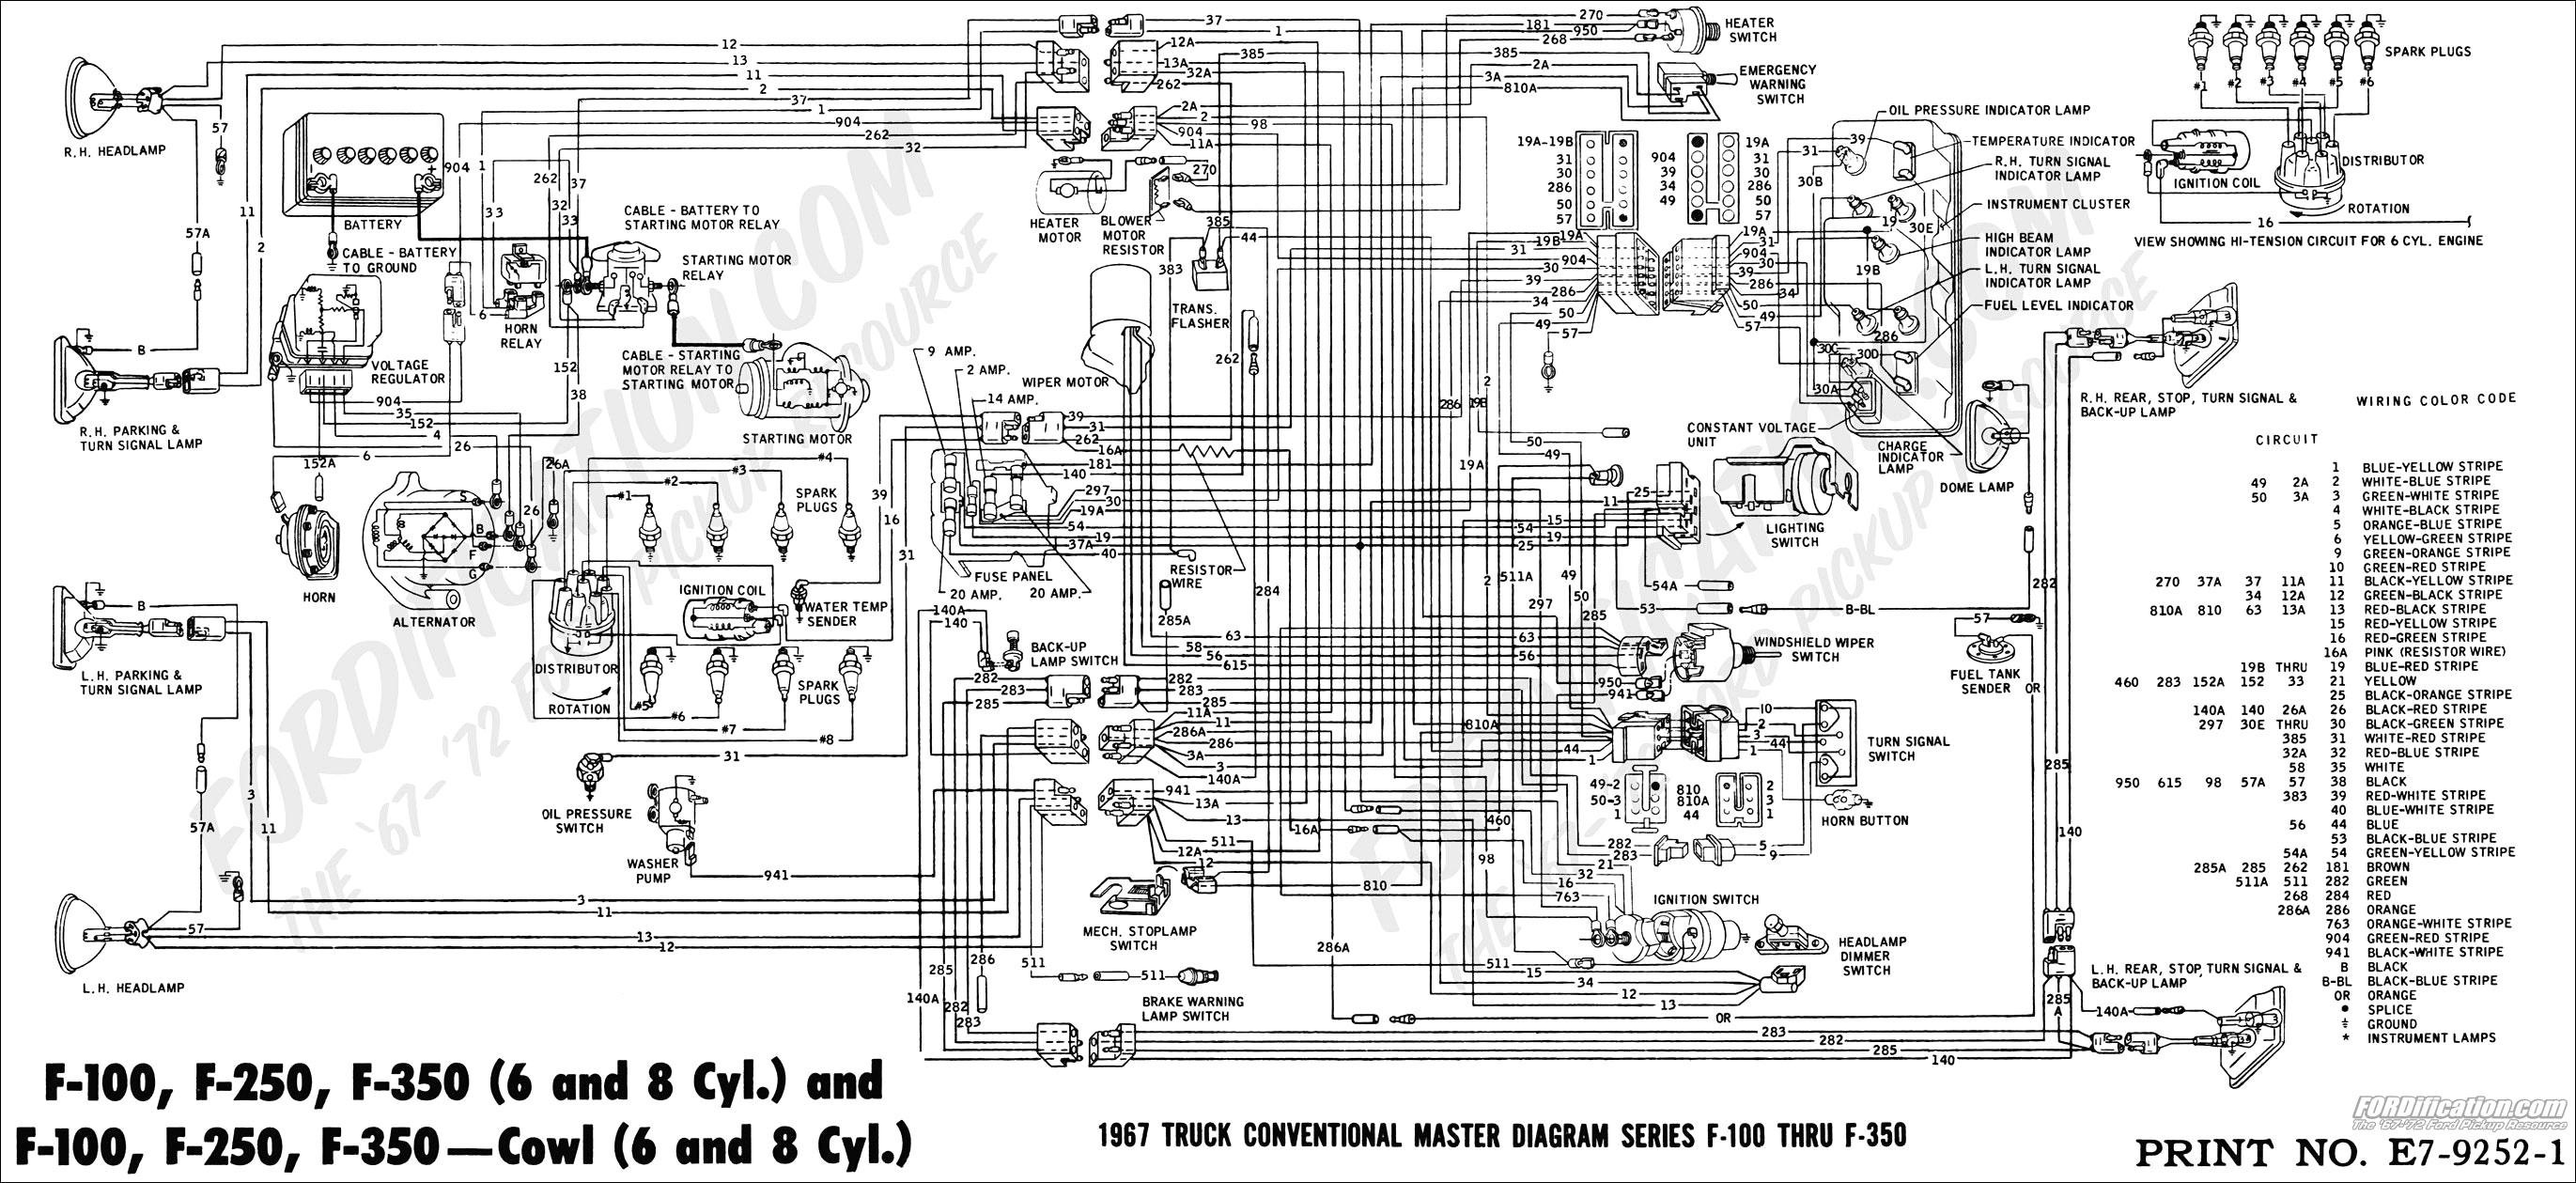 1999 oldsmobile cutl fuse box diagram